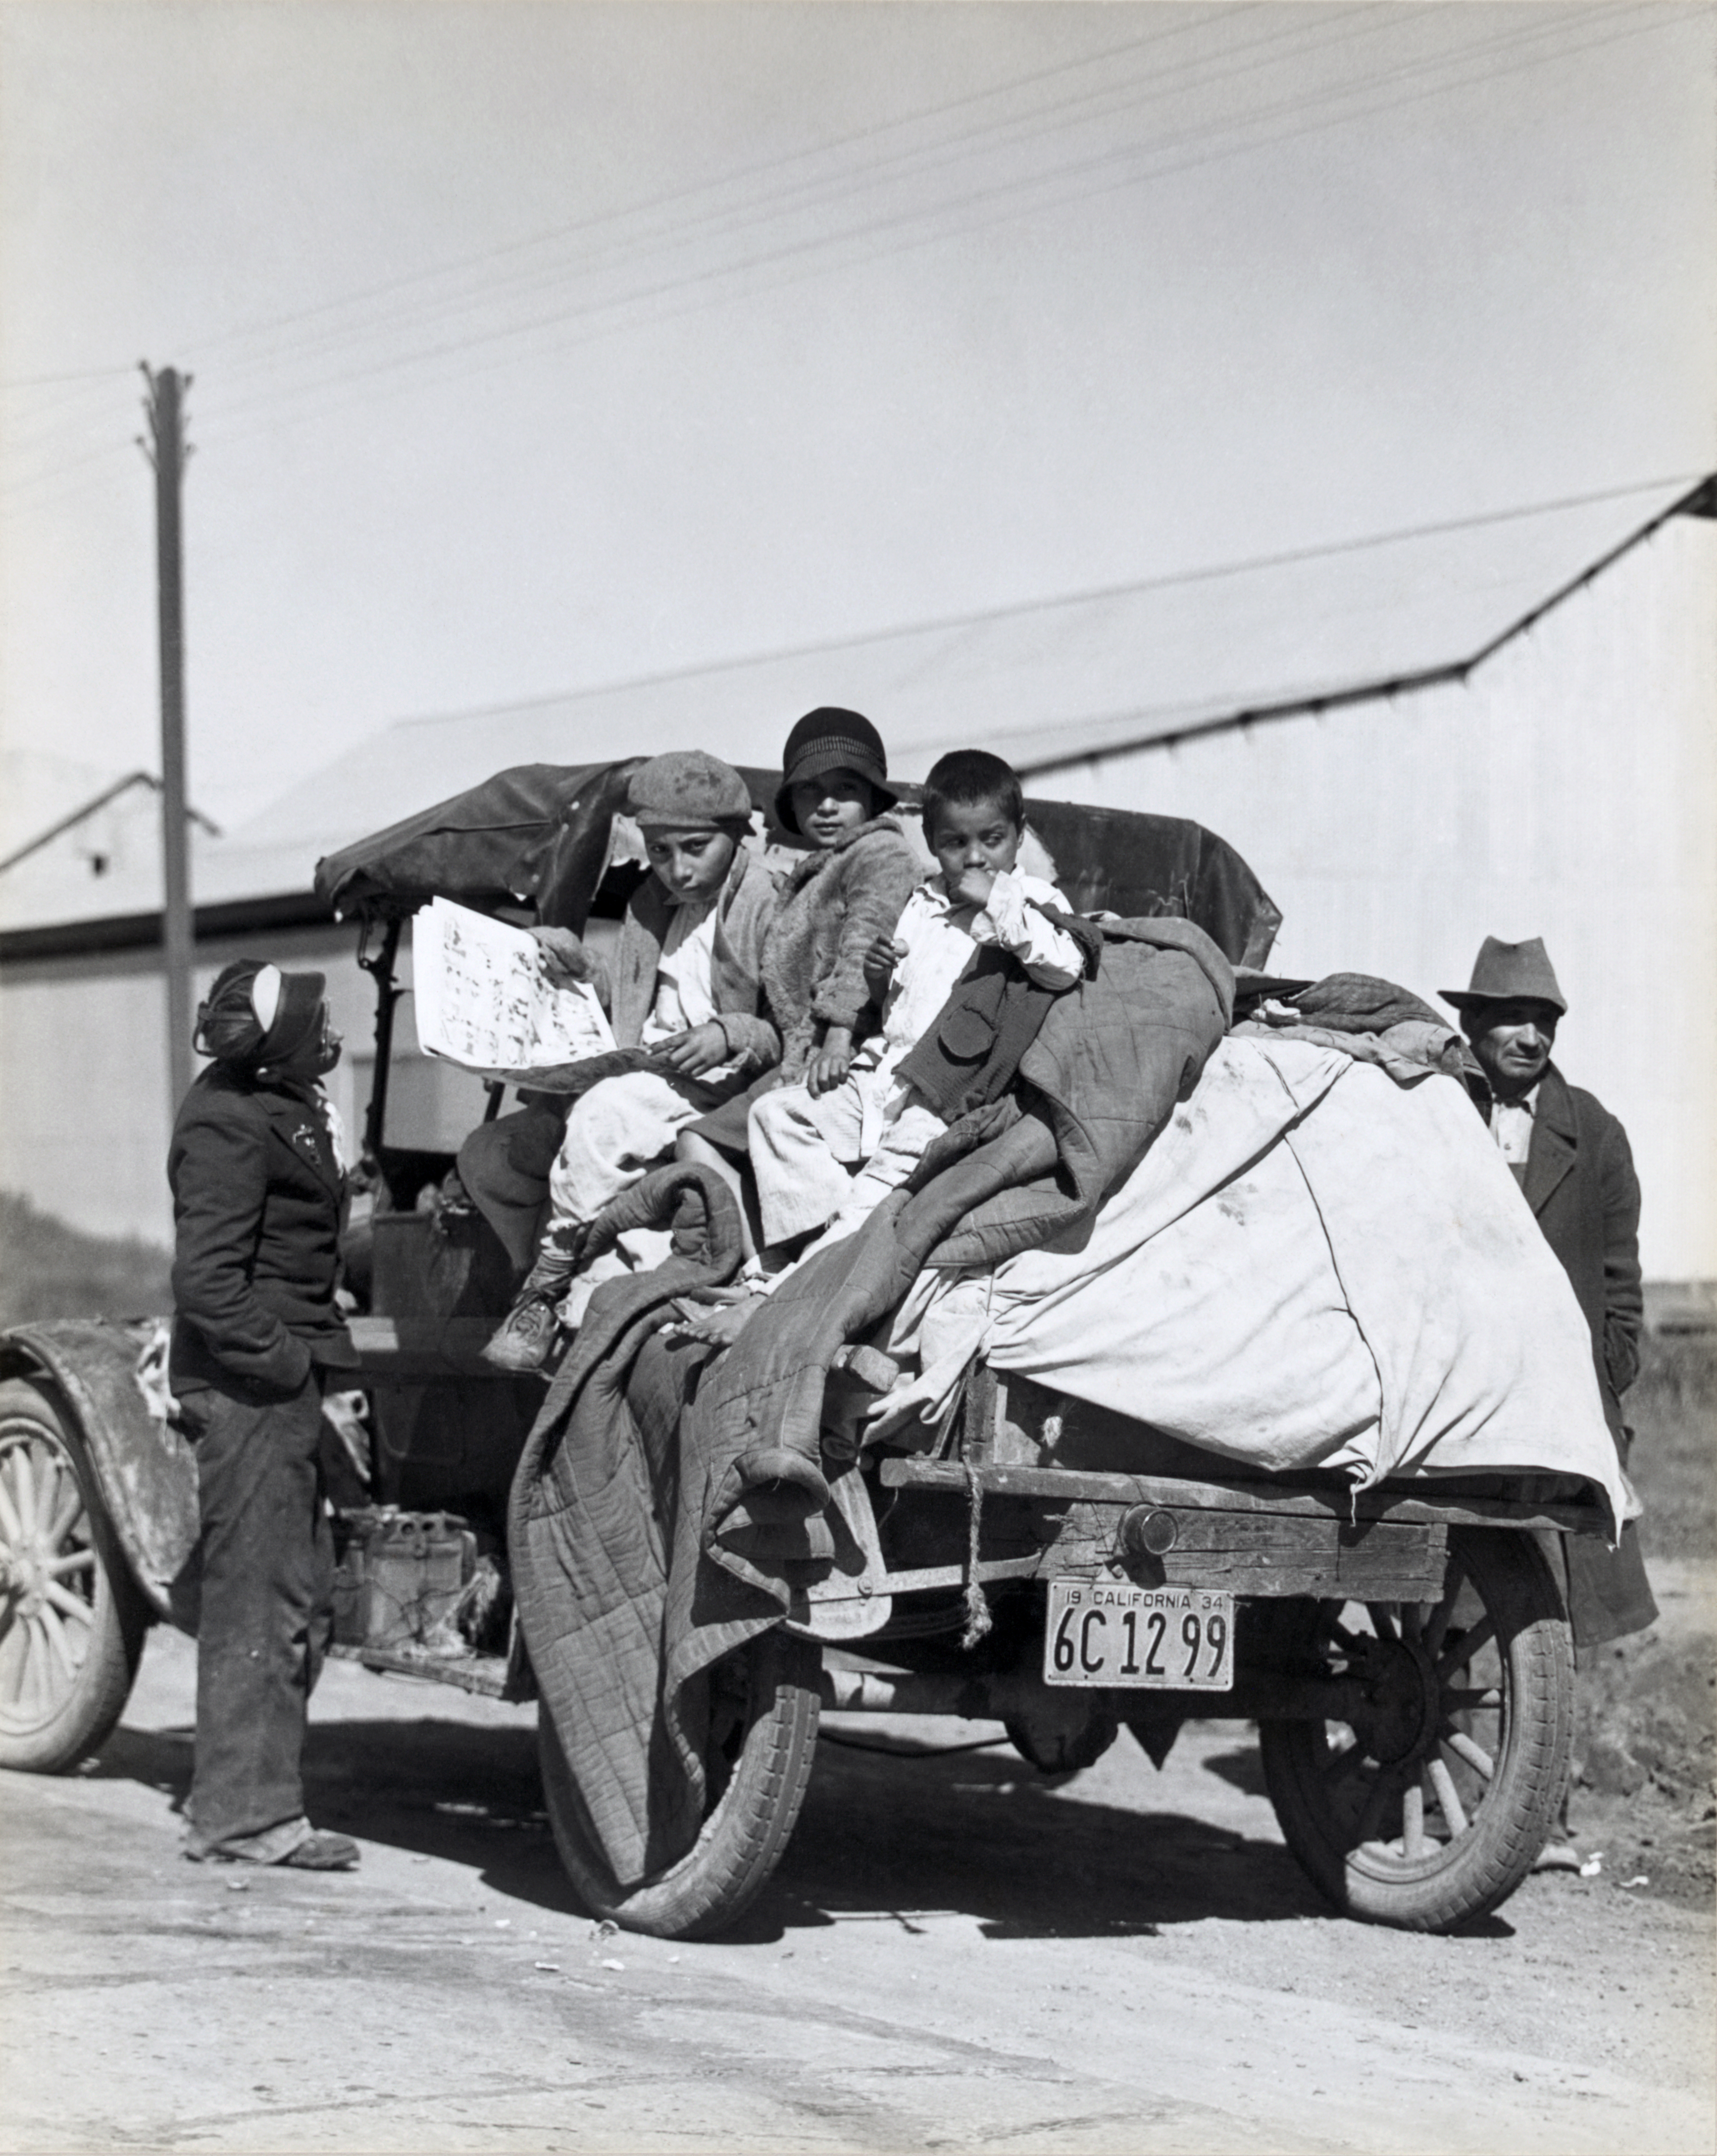 On the Road for Work: Migratory Workers on the East Coast of the United States